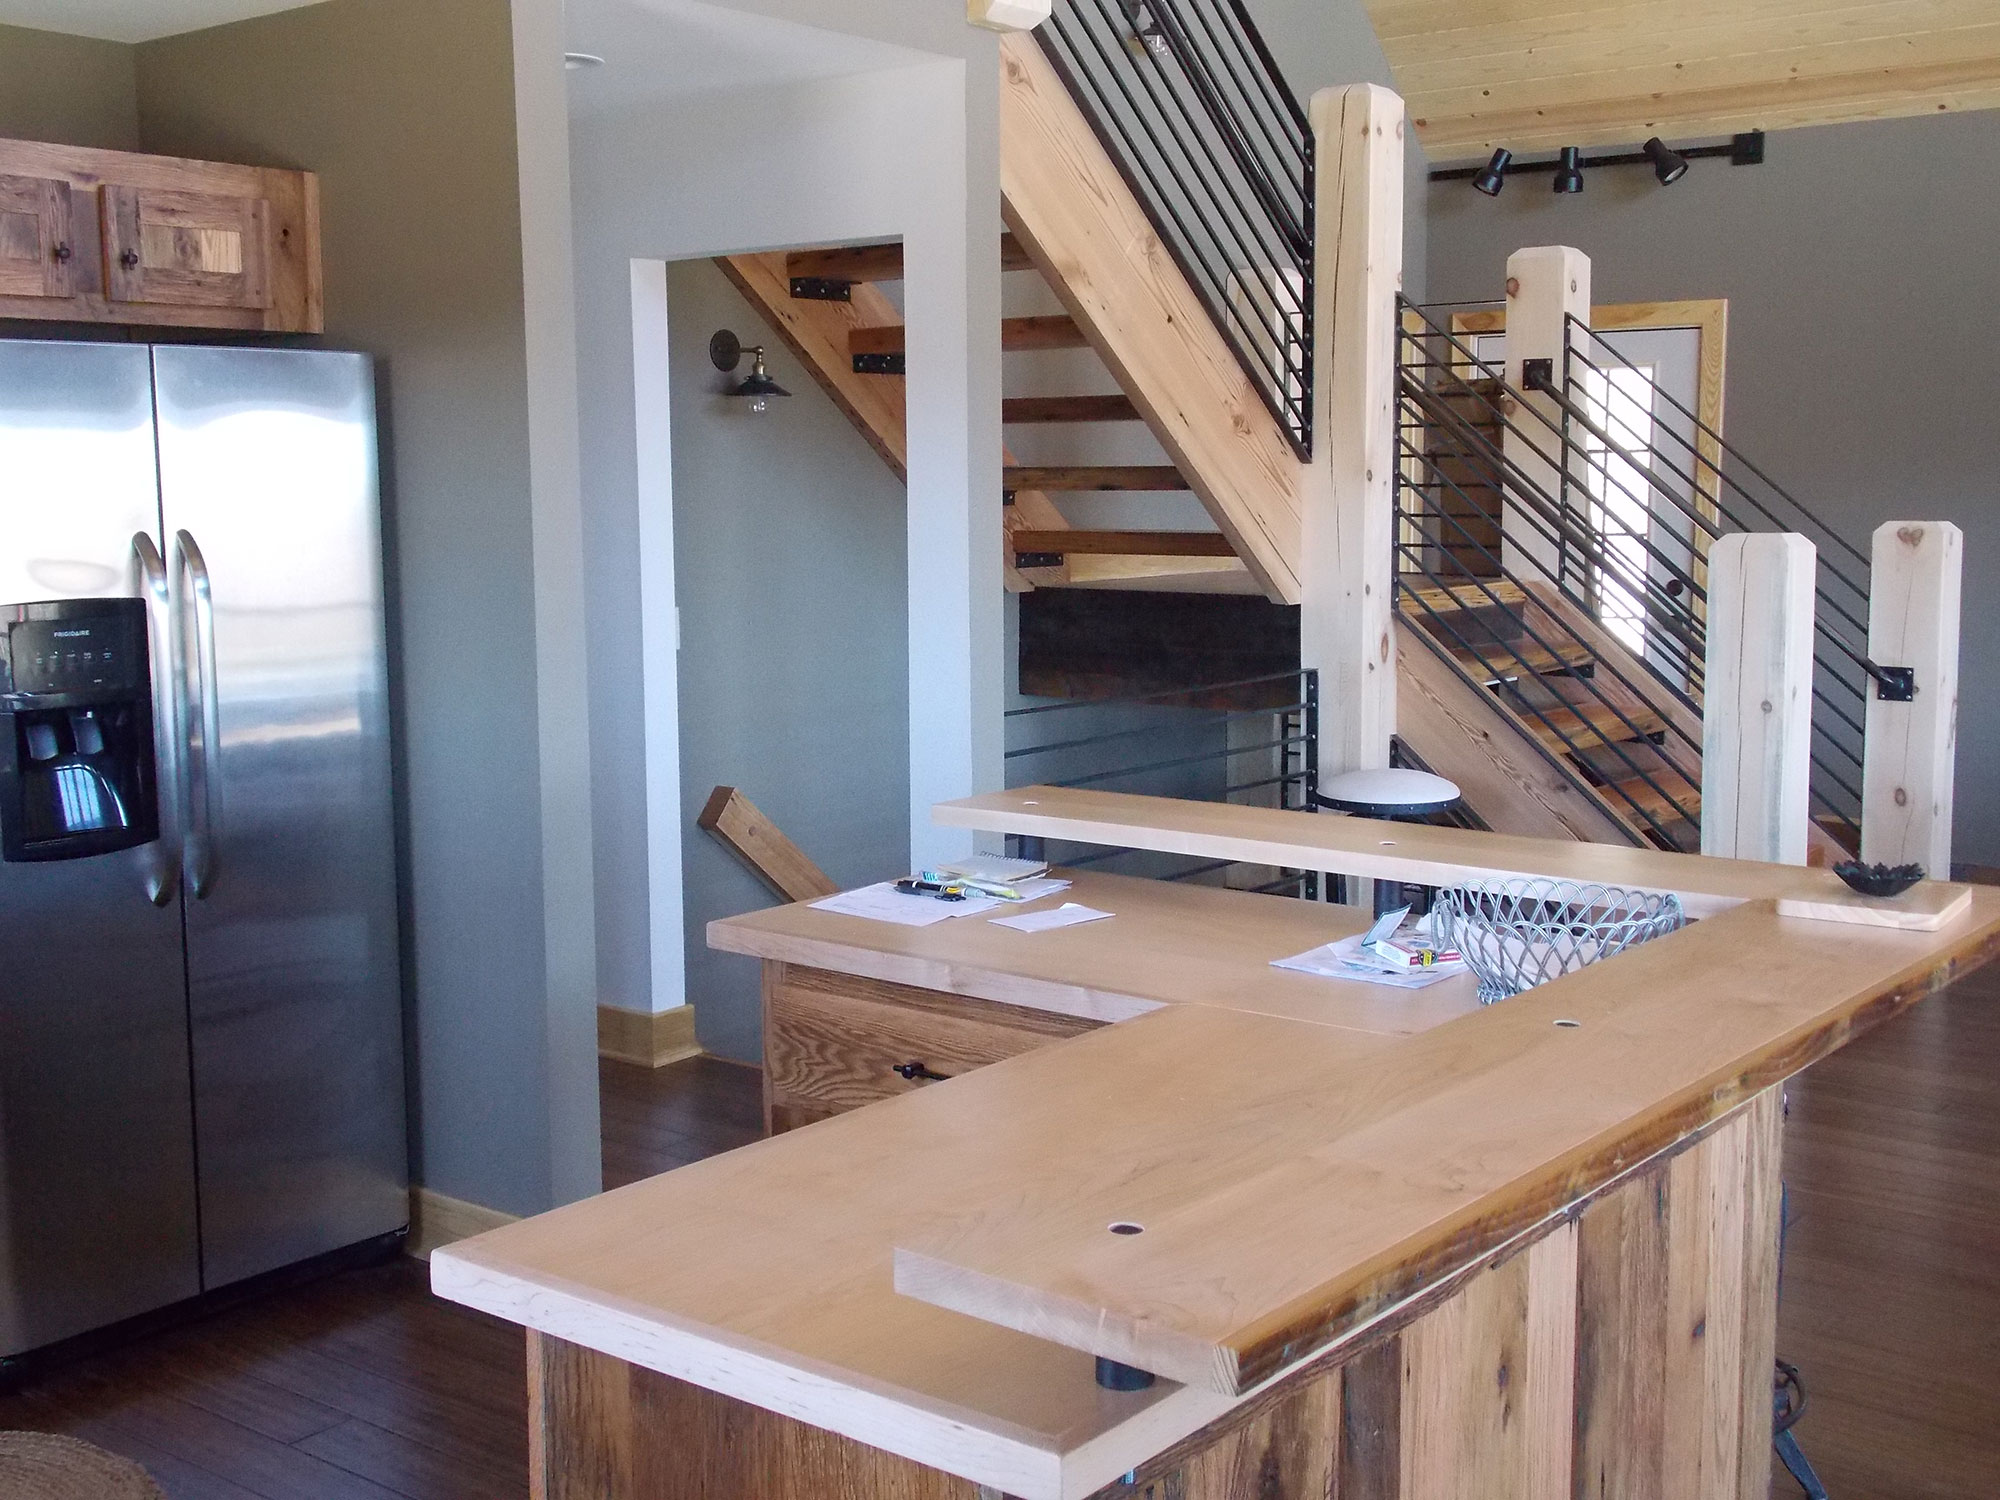 Chalet Kitchen Island from Reclaimed Wood